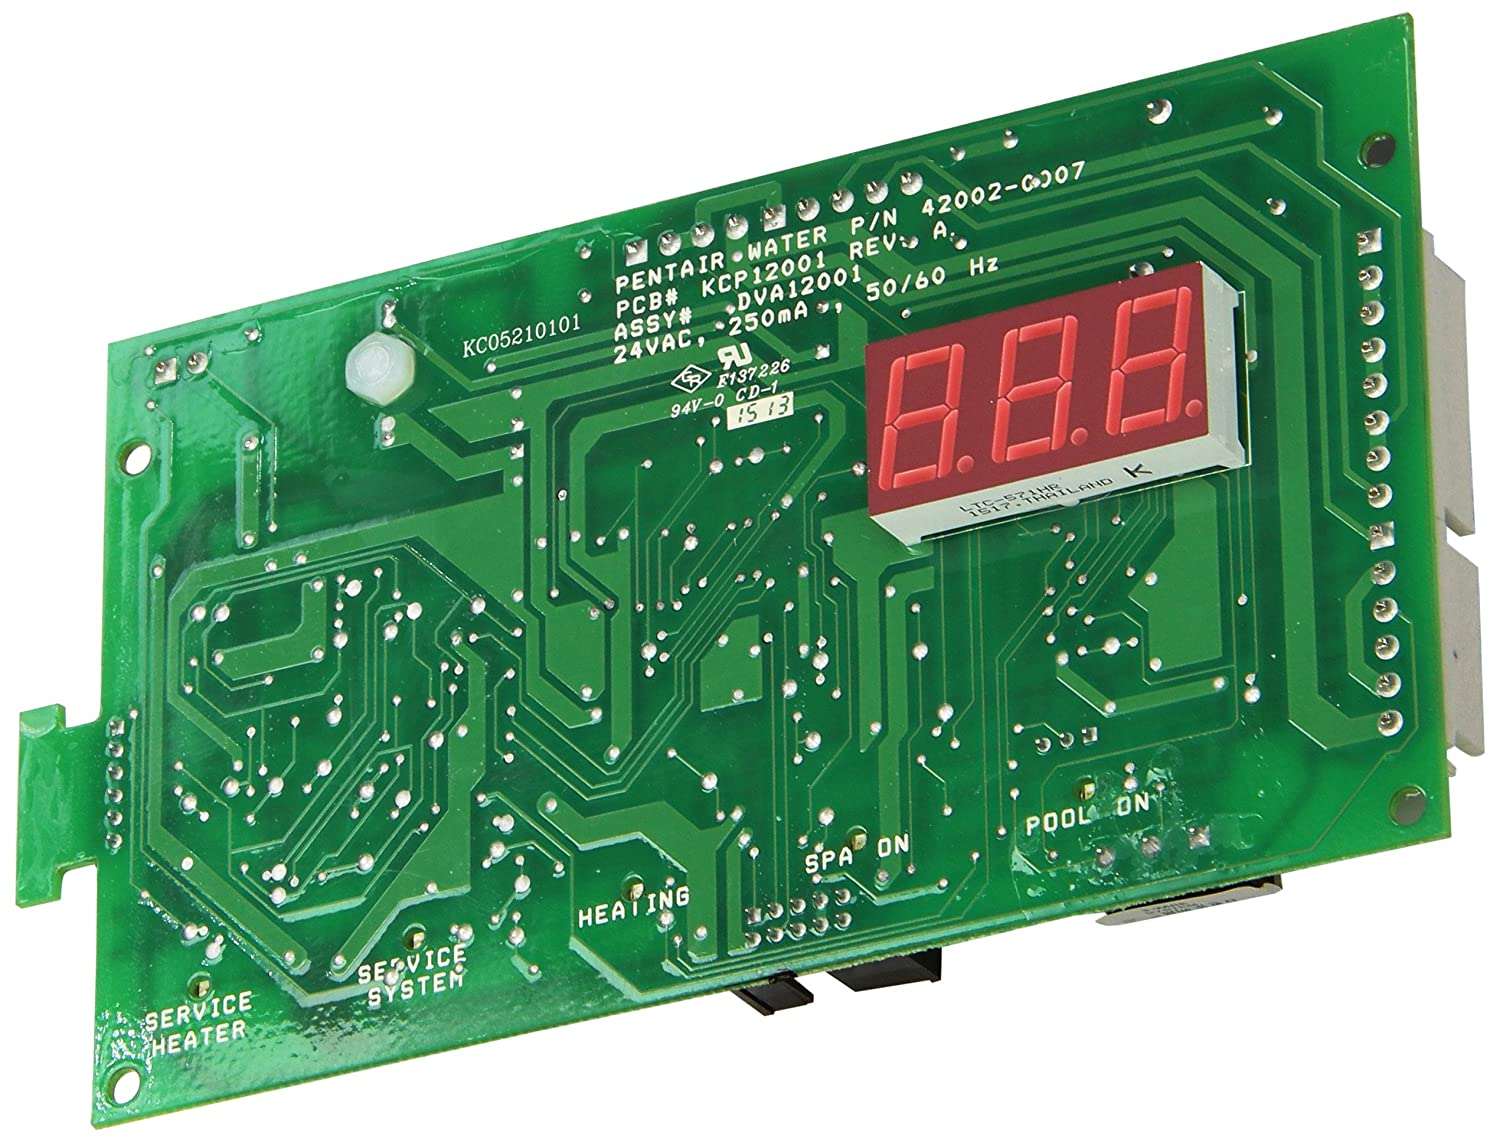 Imc 304 Defrost Timer Wiring Diagram Will Be A Thing Commercial Walk In Freezer Tstatccprh01 B 1986 Ford Ranger